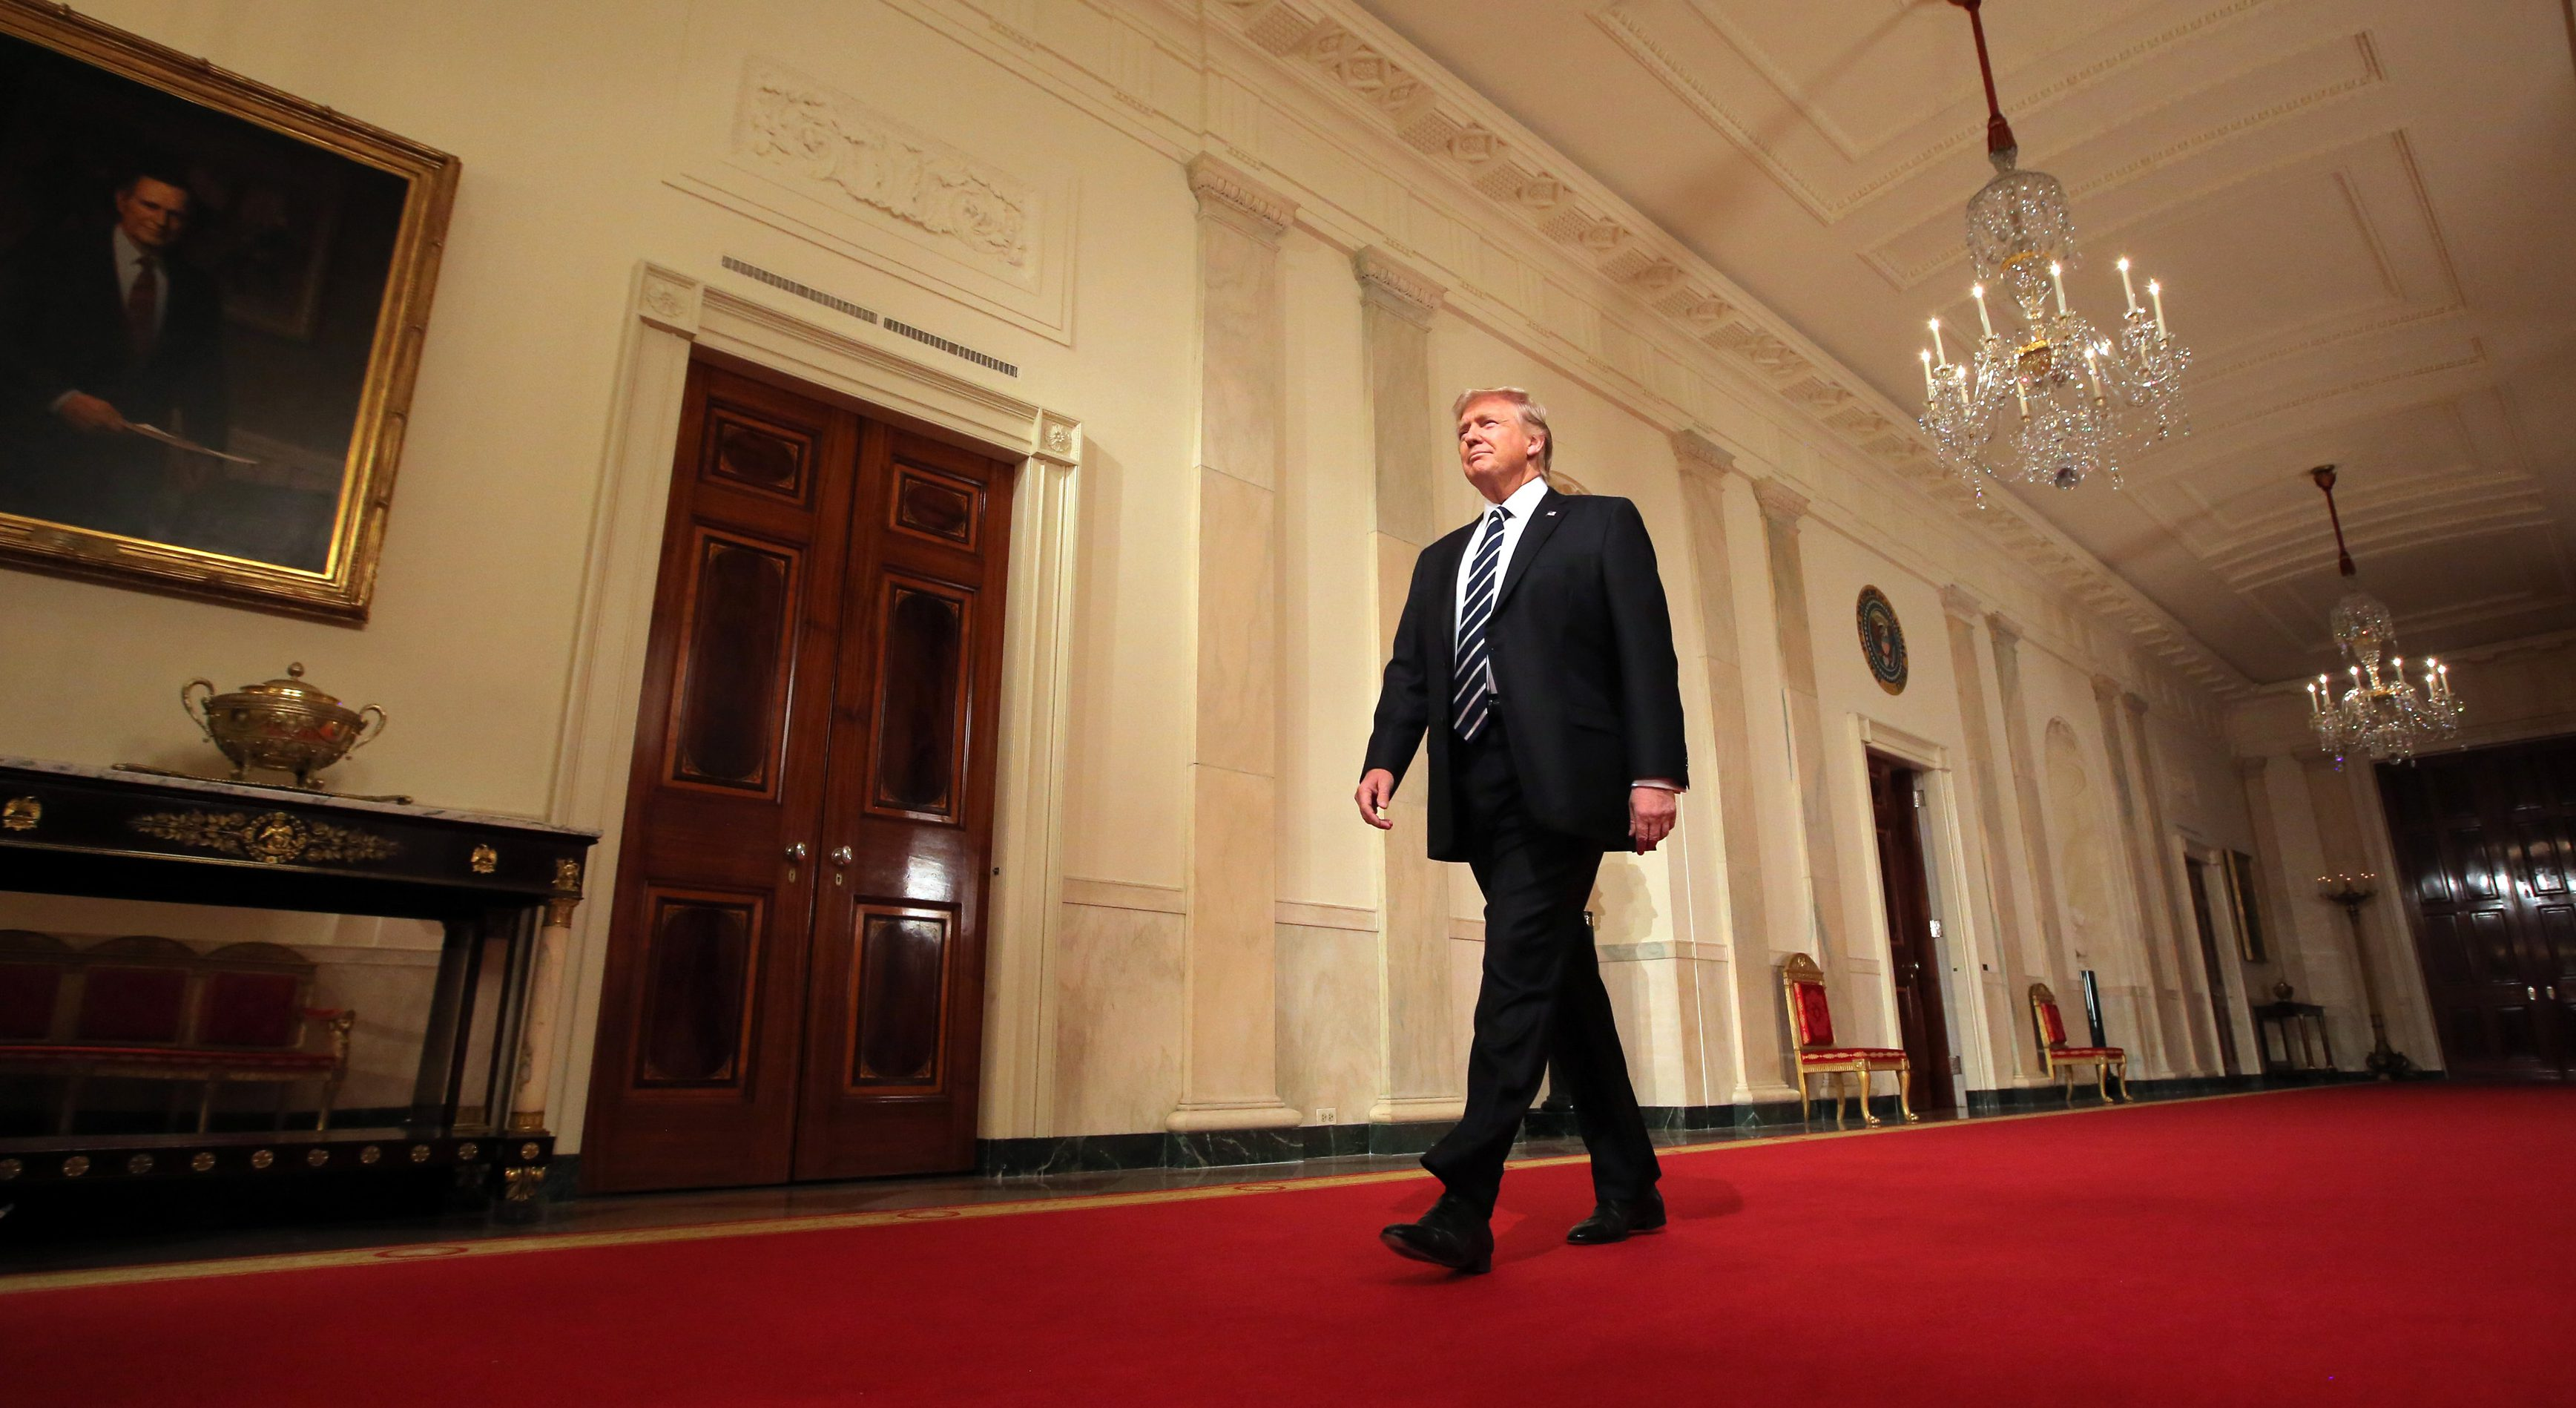 U.S. President Donald Trump arrives to announce his nomination of Neil Gorsuch for the empty associate justice seat of the U.S. Supreme Court at the White House in Washington, D.C., U.S., January 31, 2017.